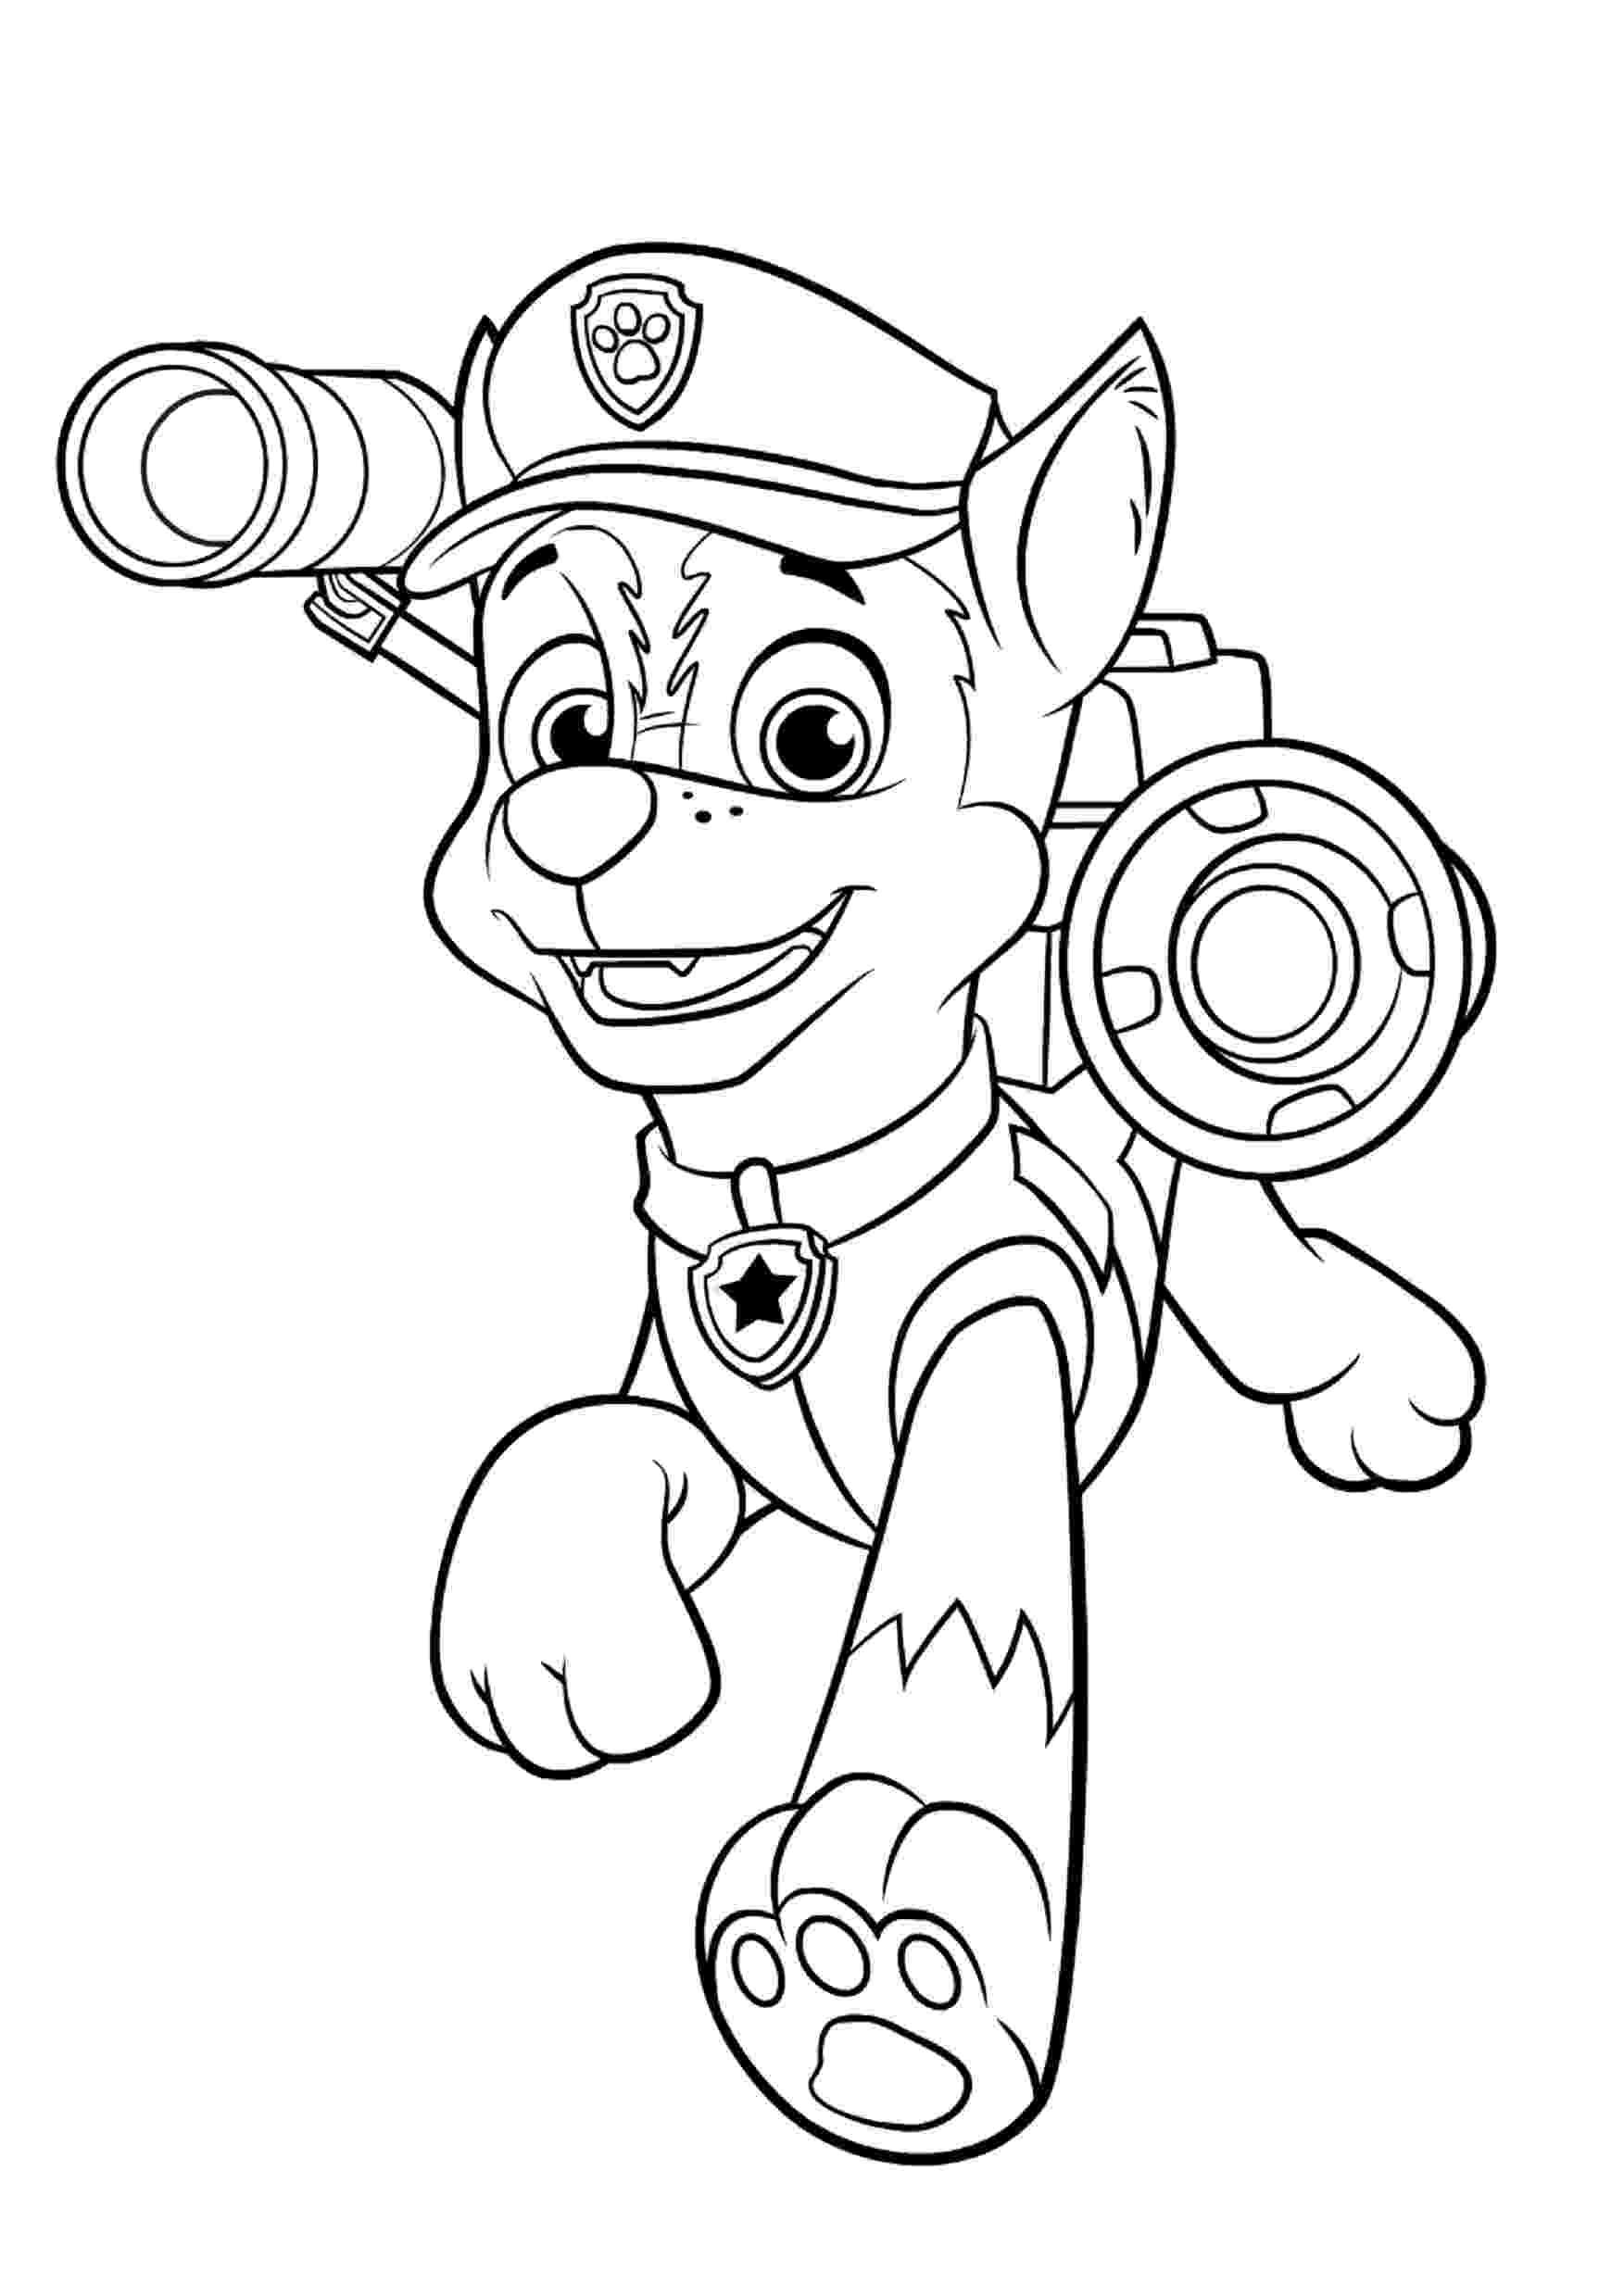 paw patrol coloring pages free printable coloring pages paw patrol at getdrawings pages paw patrol coloring